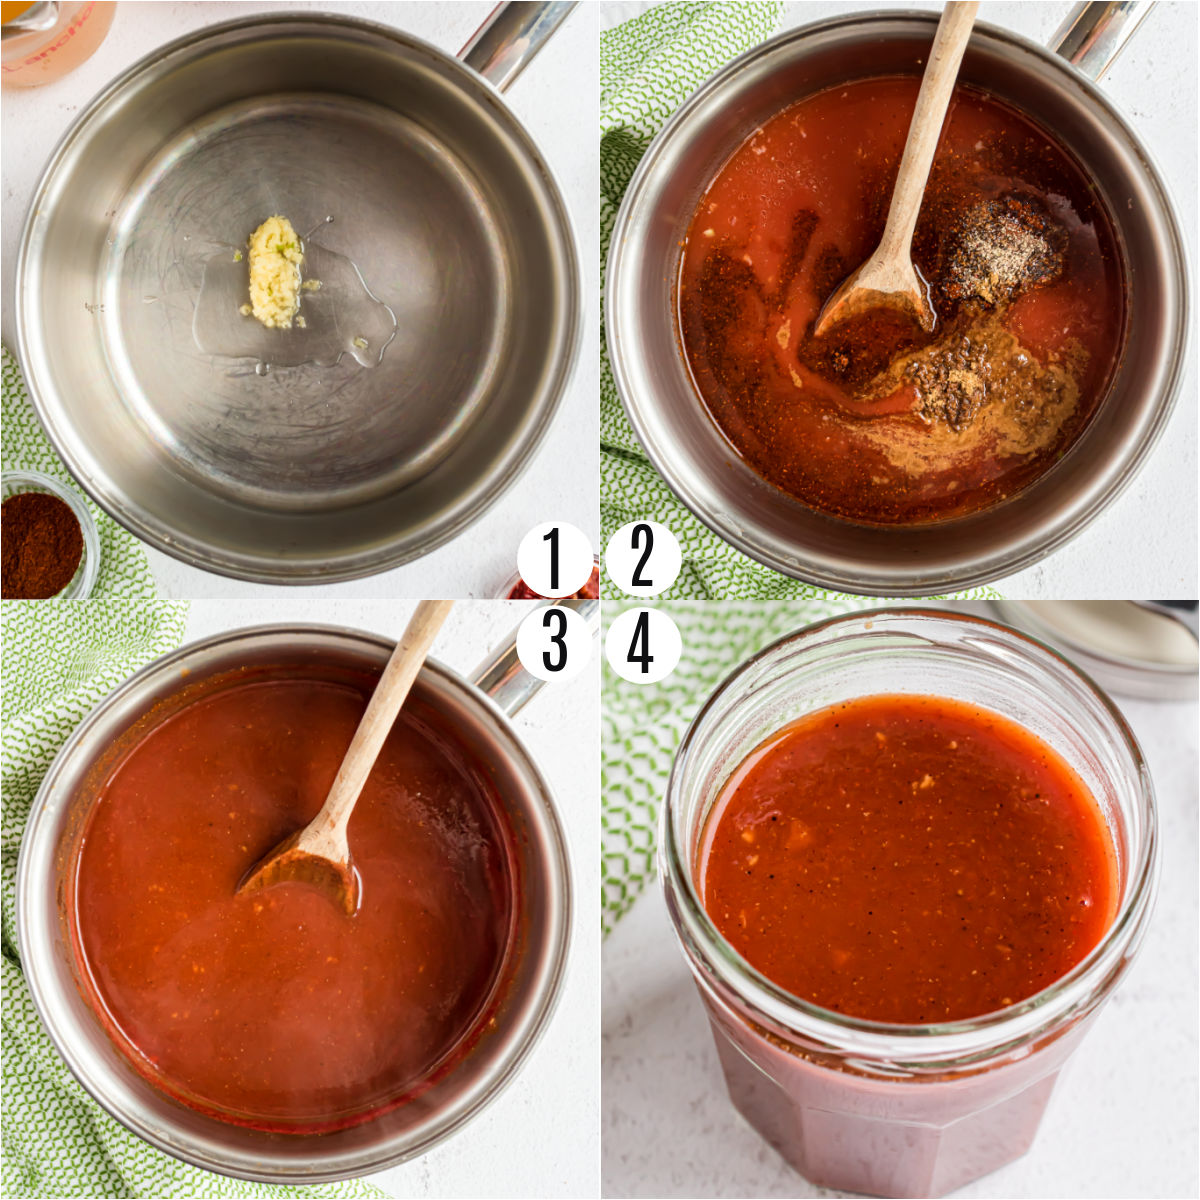 Step by step photos showing how to make sugar free enchilada sauce.